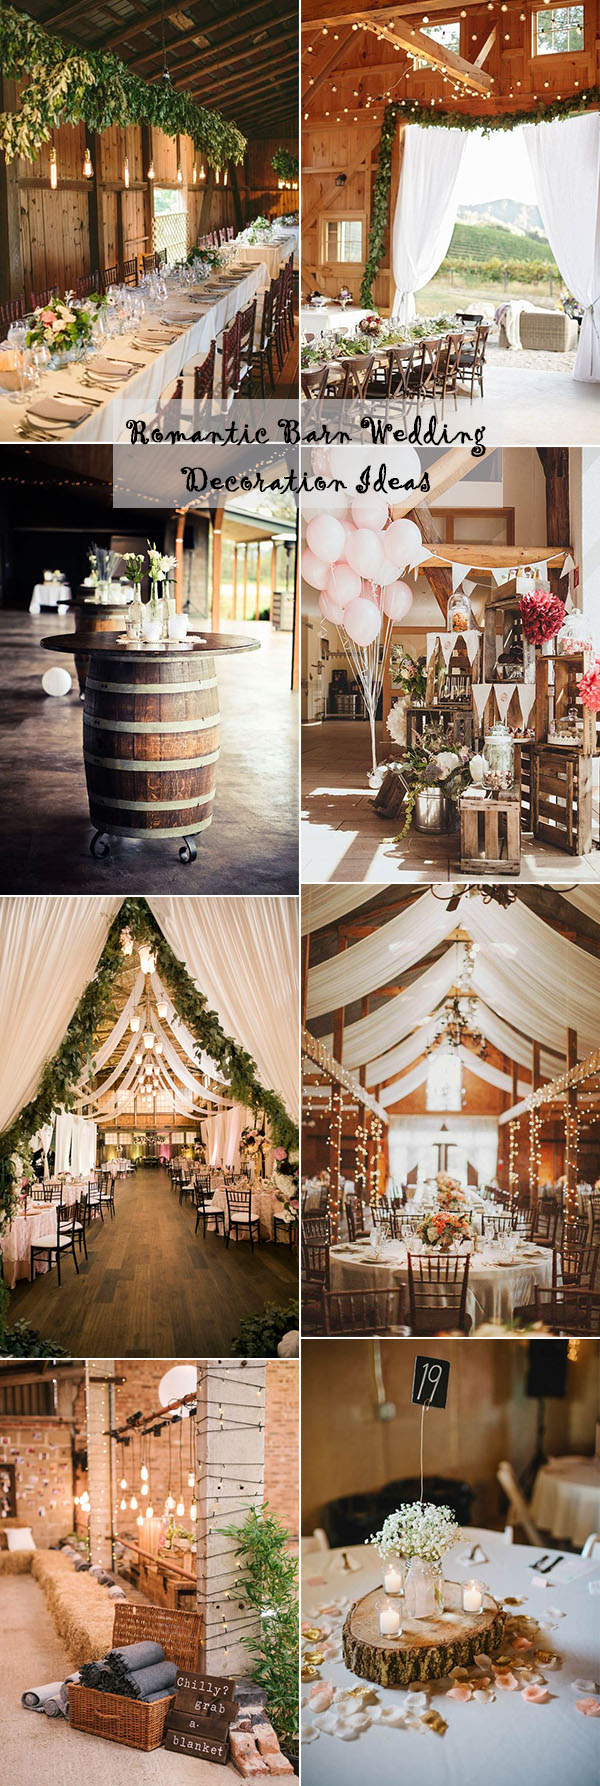 Cheap Rustic Wedding Decor 25 Sweet And Romantic Rustic Barn Wedding Decoration Ideas